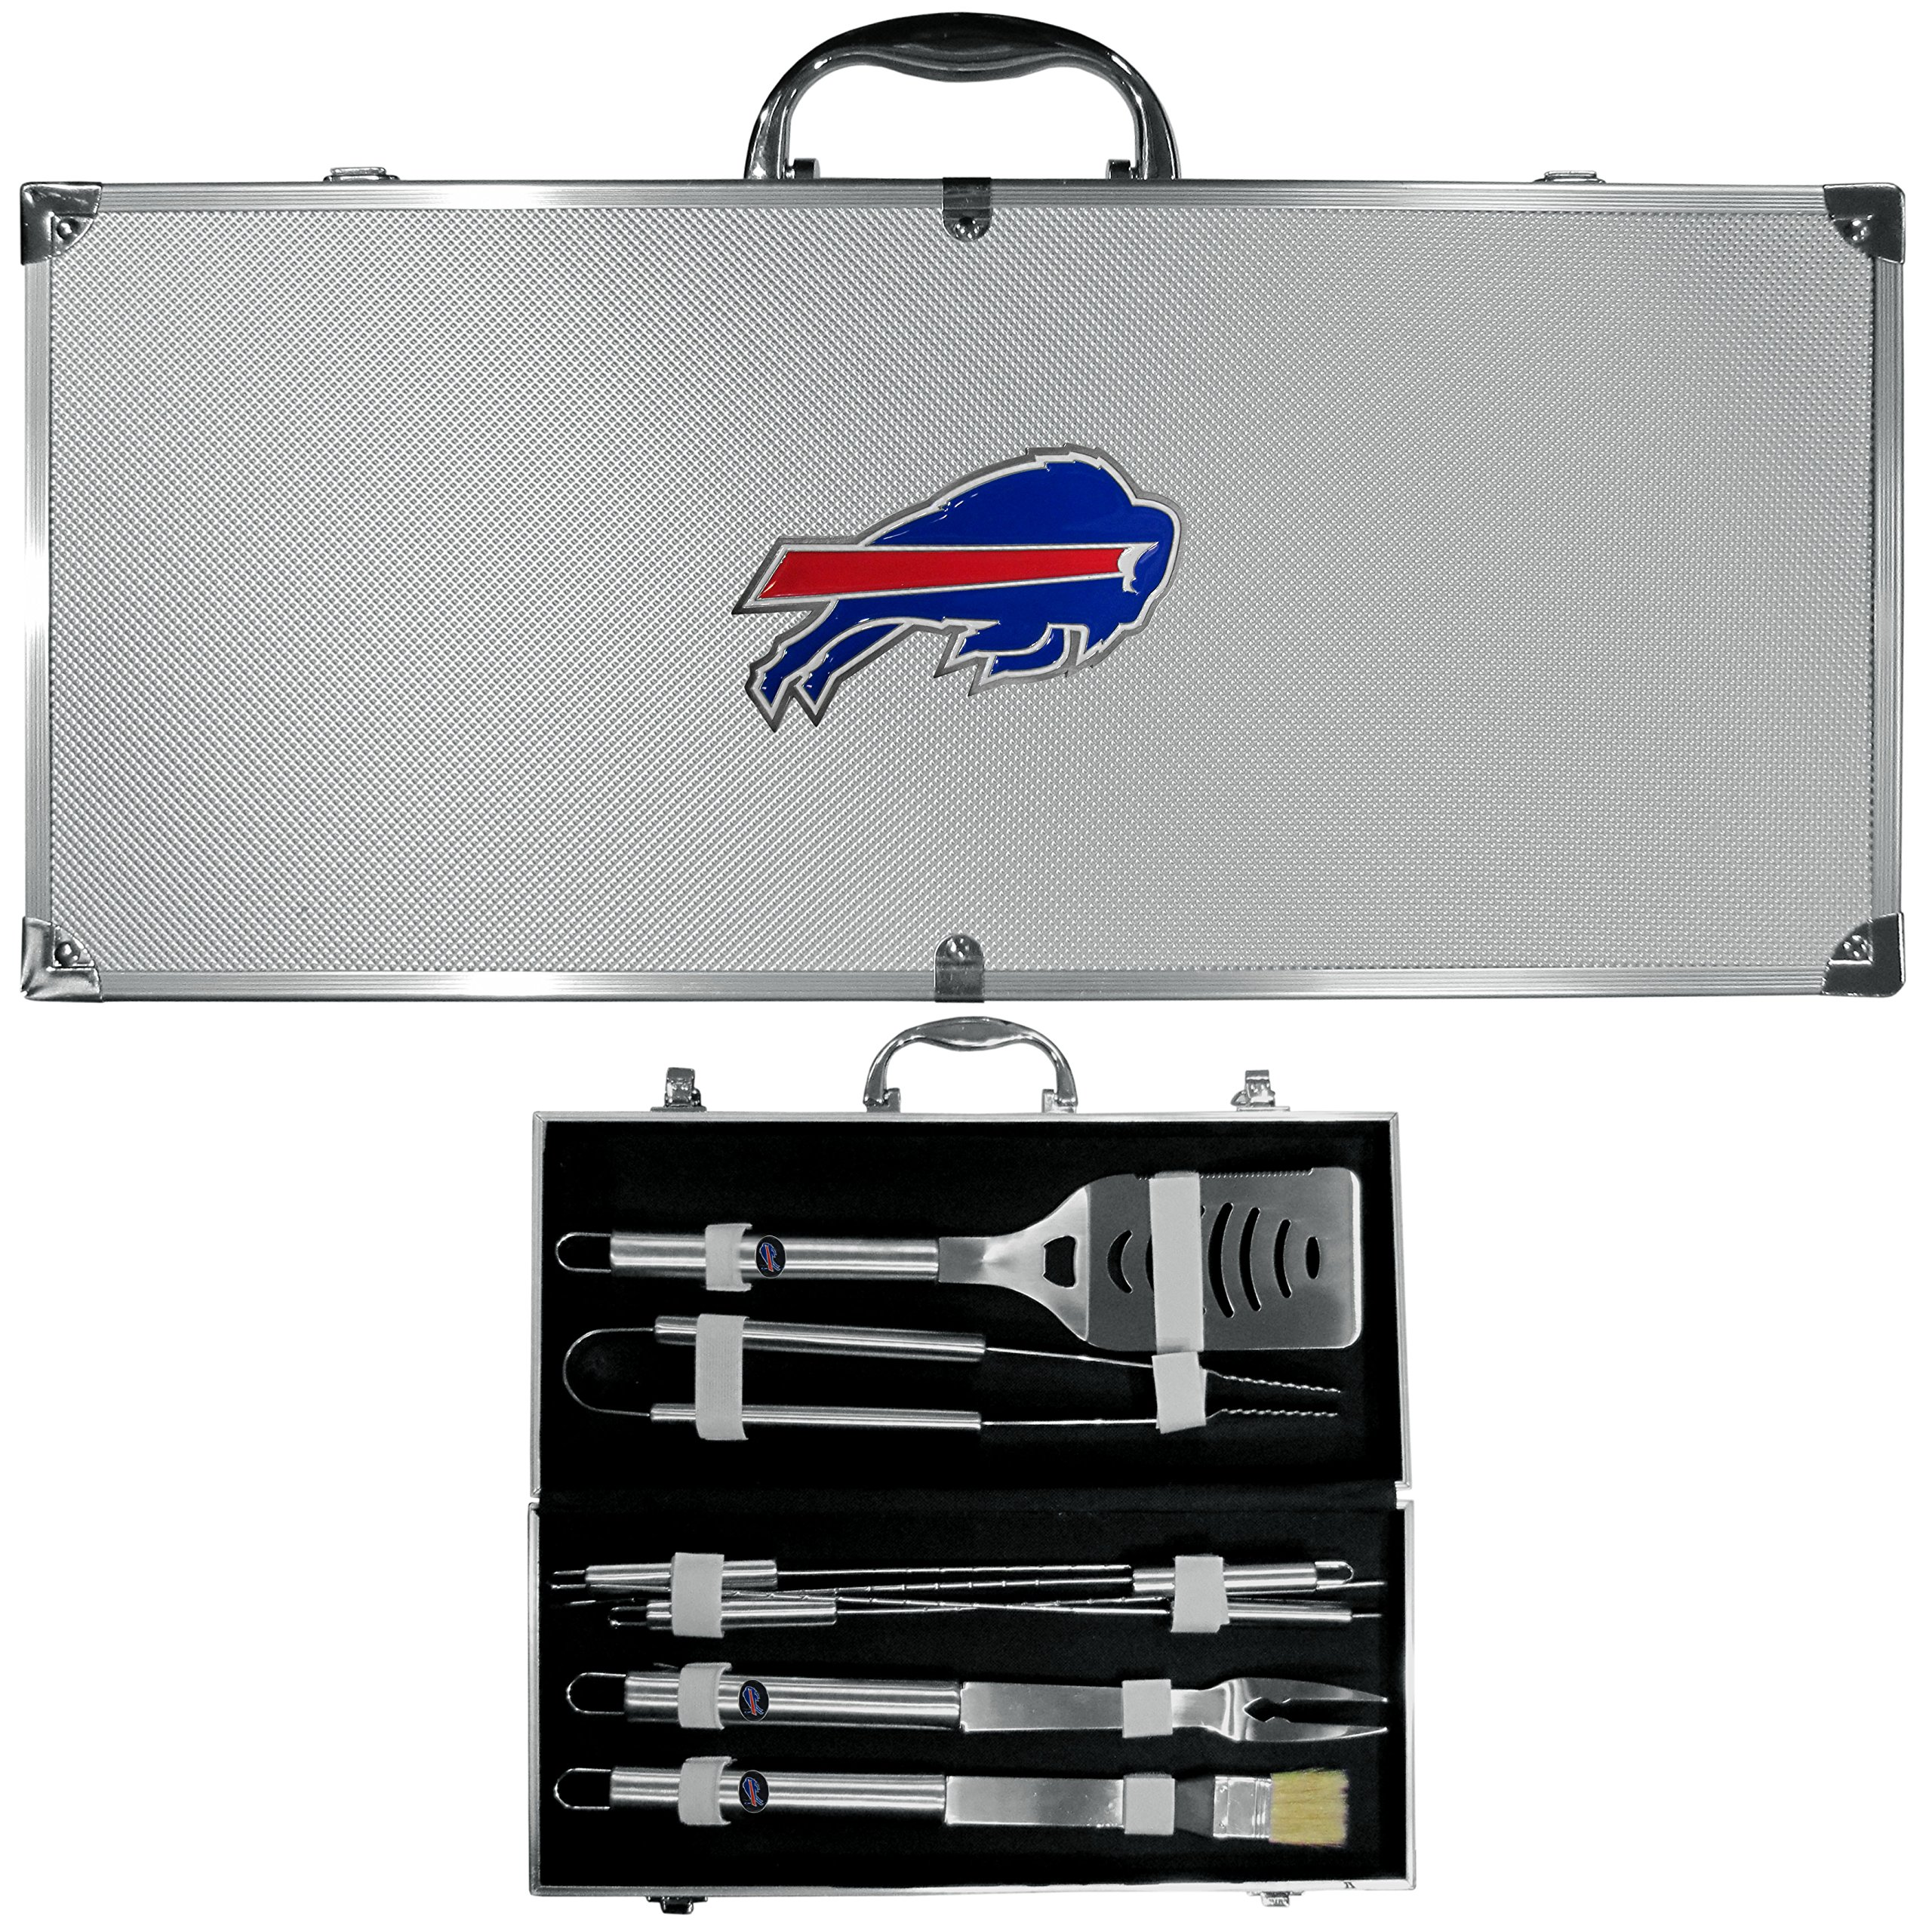 Siskiyou NFL Buffalo Bills 8-Piece Barbecue Set w/Case